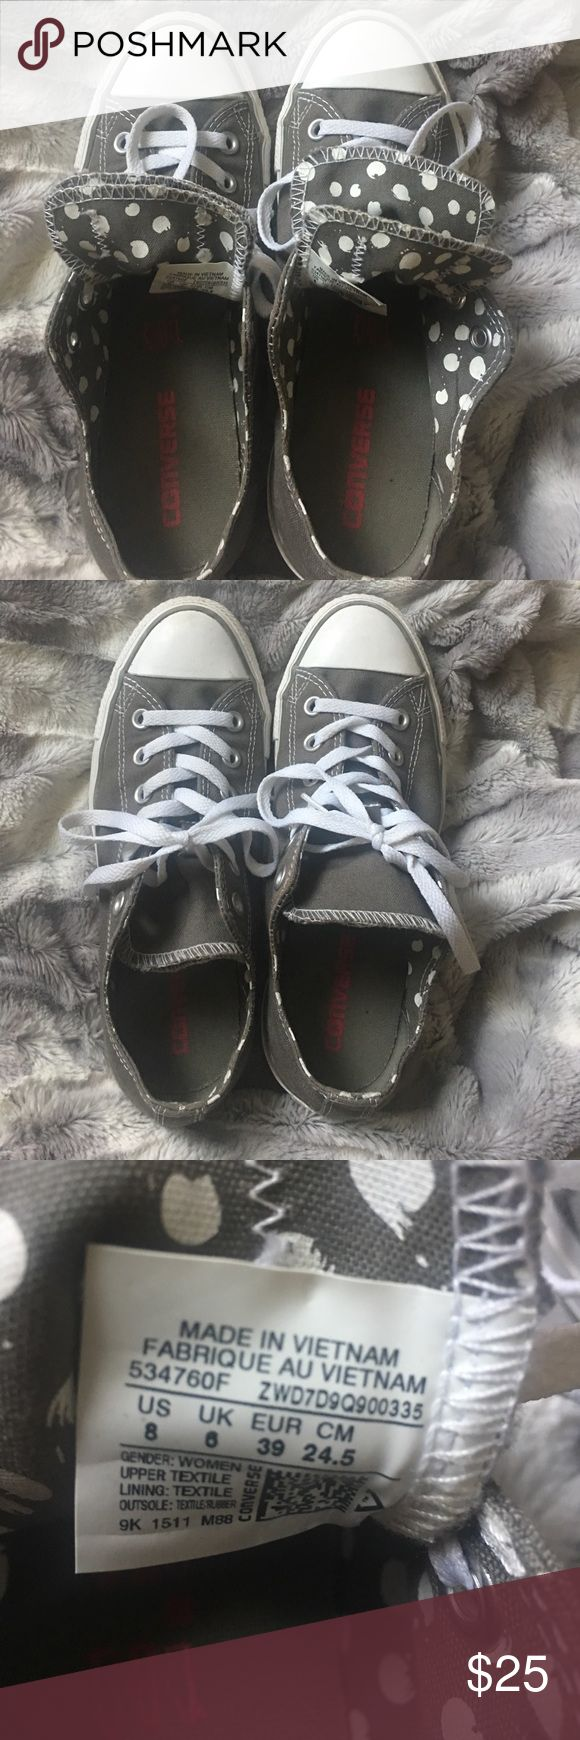 Ladies Converse All Star Polka Dot Tongue Sz 8 Ladies Converse All Star Polka Dot Tongue Sz 8.  Gently used from smoke free environment. Converse Shoes Sneakers